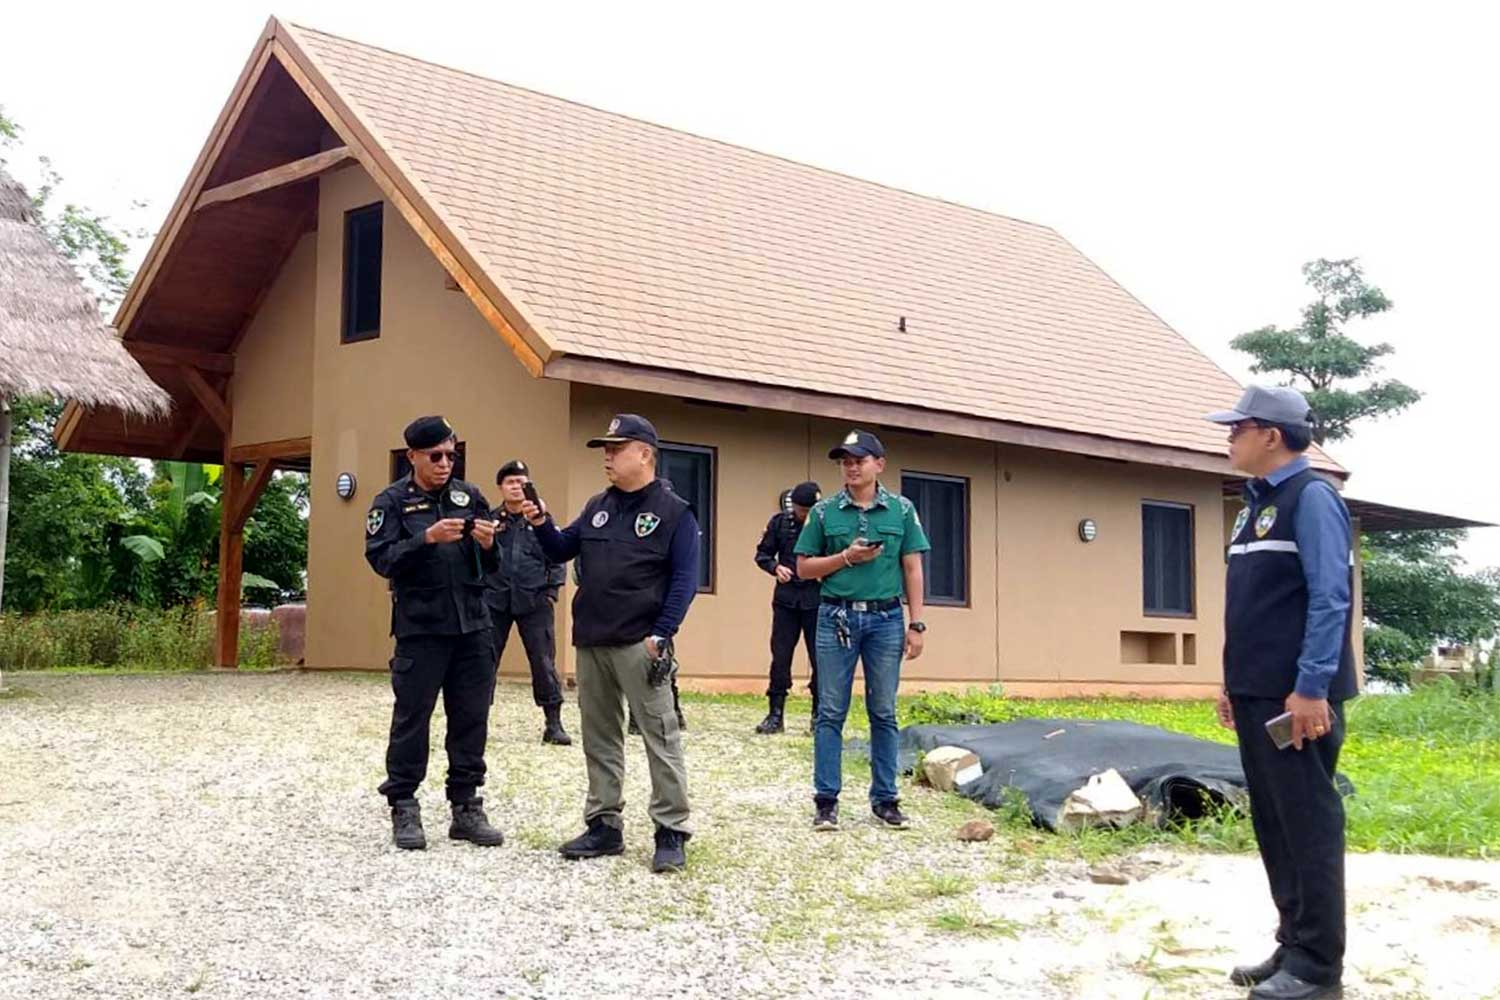 Officials inspect the site of a house near Khao Kho national park in Phetchabun. A senior government official reportedly owned the land plot and allowed her American friend to build a house there. (Photo: Sunthorn Kongwarakom)